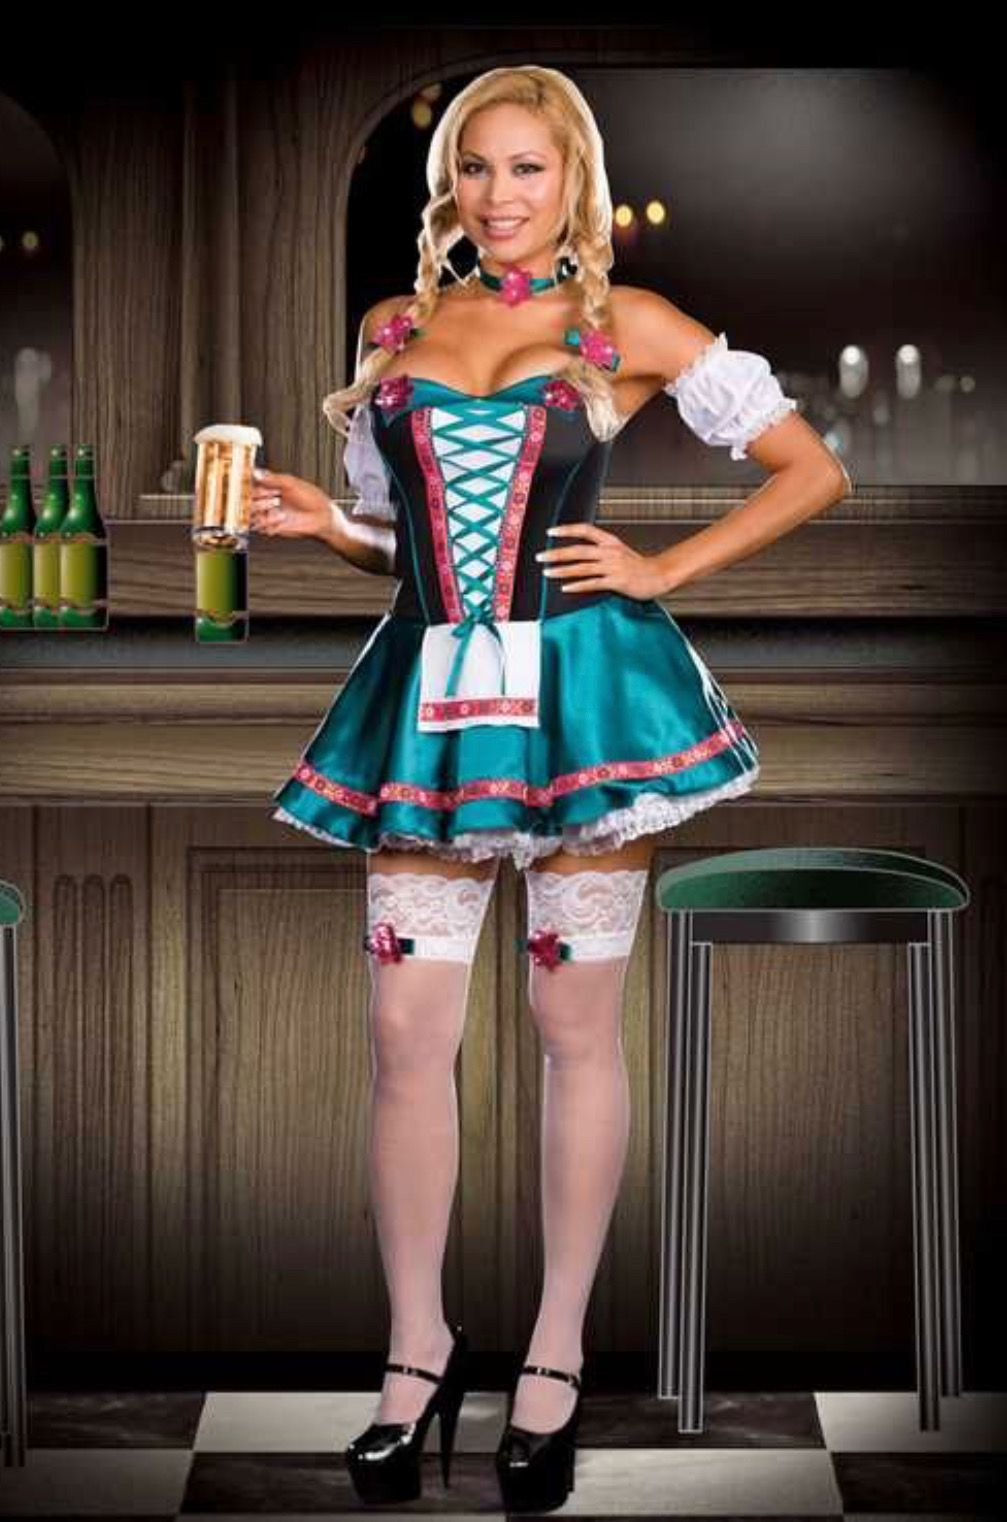 Halloween 2020 Costumes Pirate Barmaid Pin by OldAbnInf🇺🇸 on Ocktoberfest in 2020 | Fashion, Style